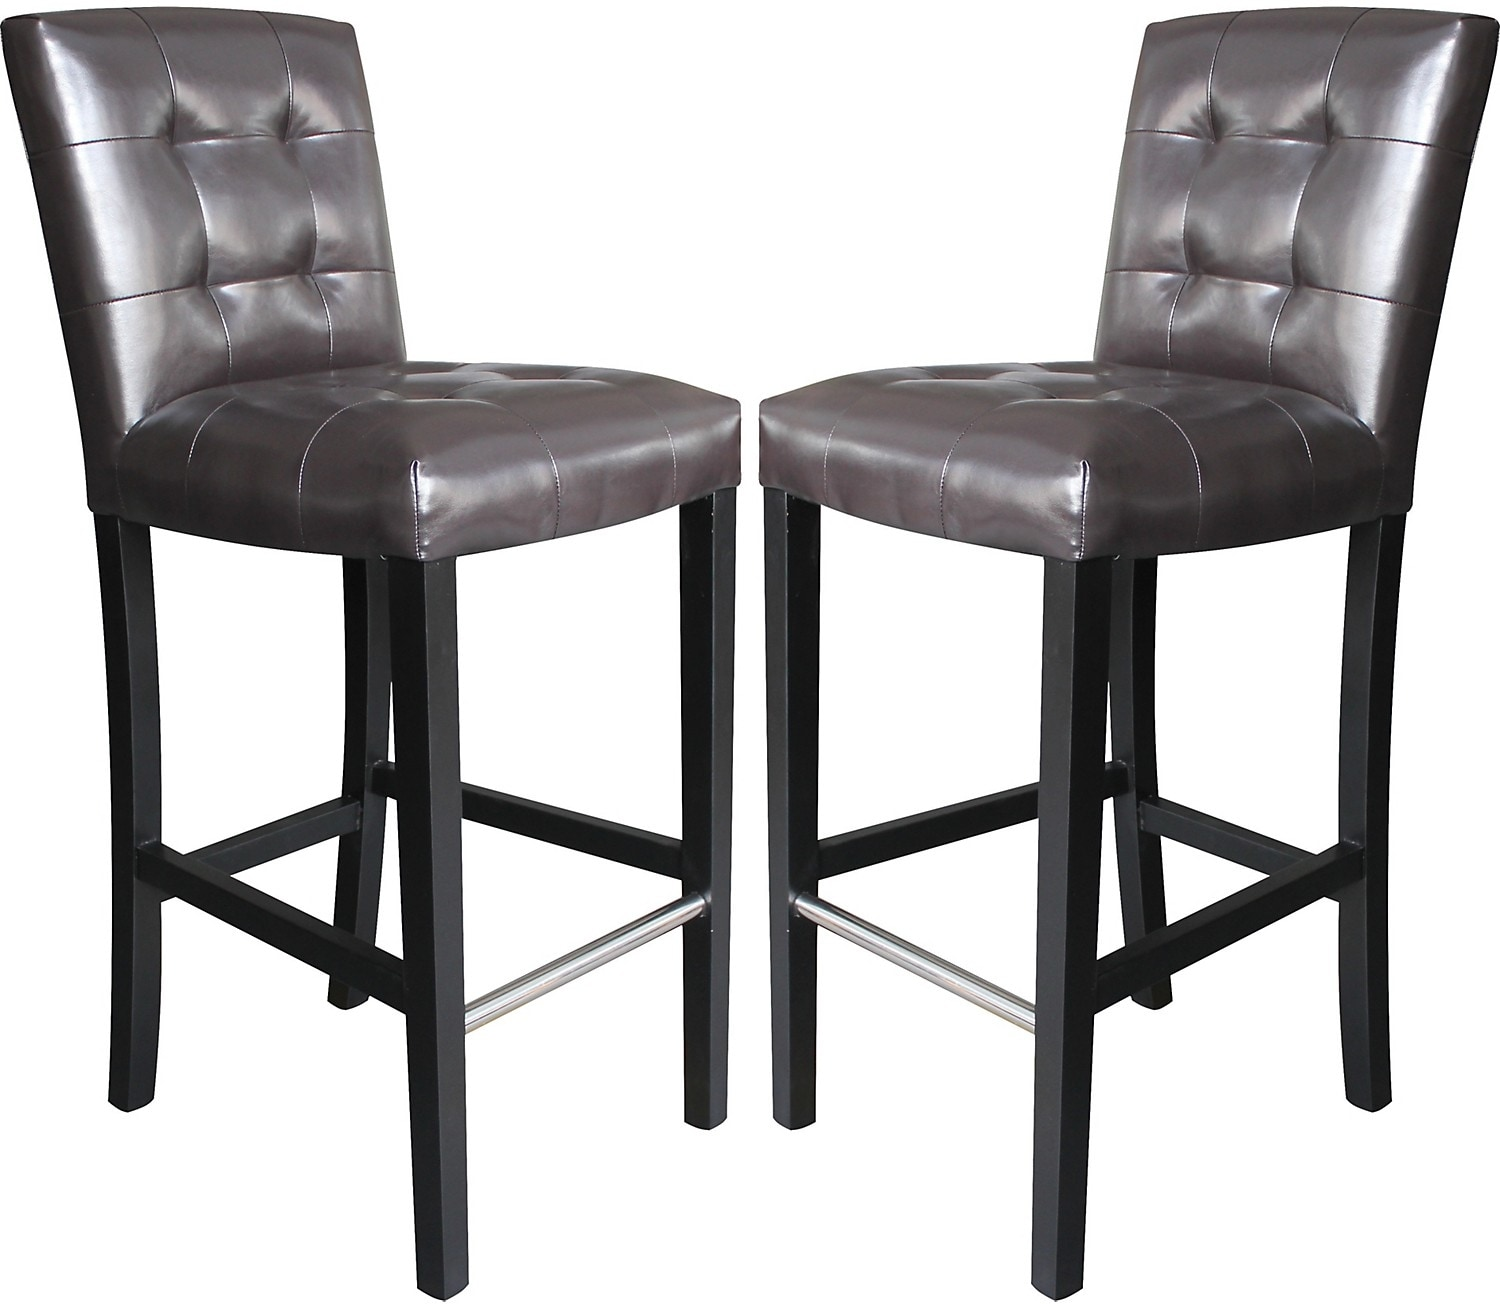 Cosmo Bar Stool Set of 2 - Brown